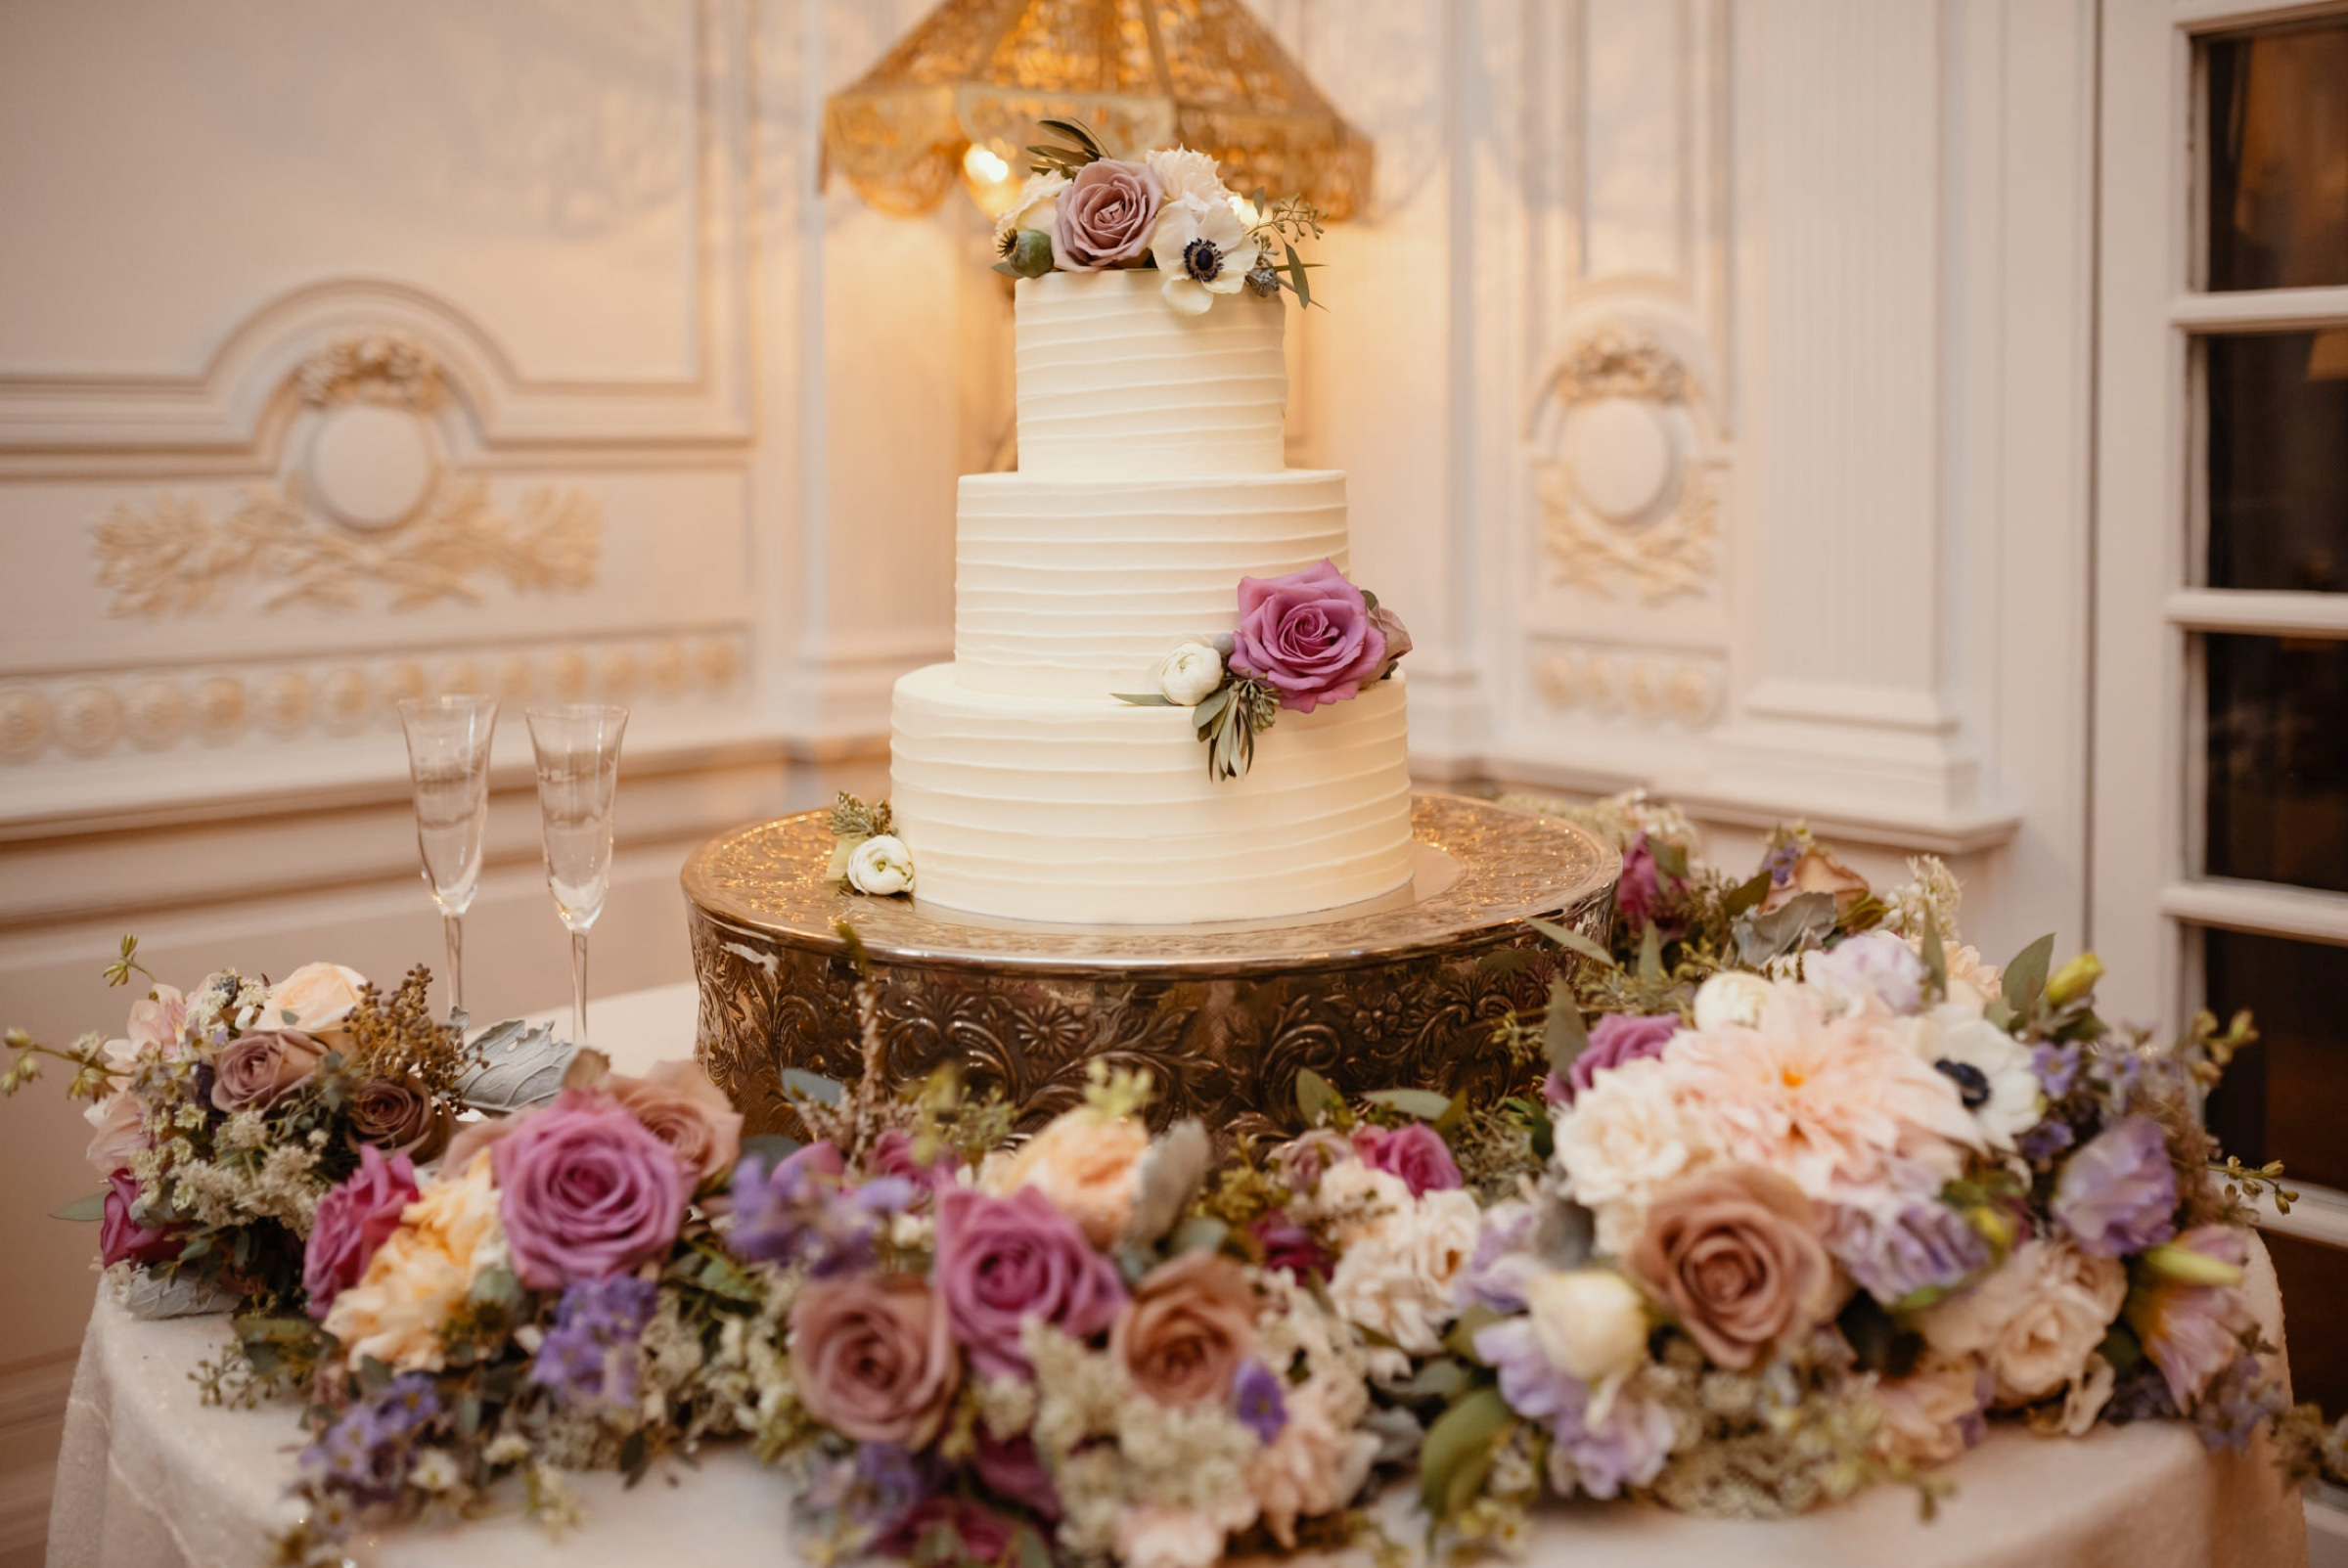 bouquets surrounding white wedding cake at reception- photo by Dark Roux